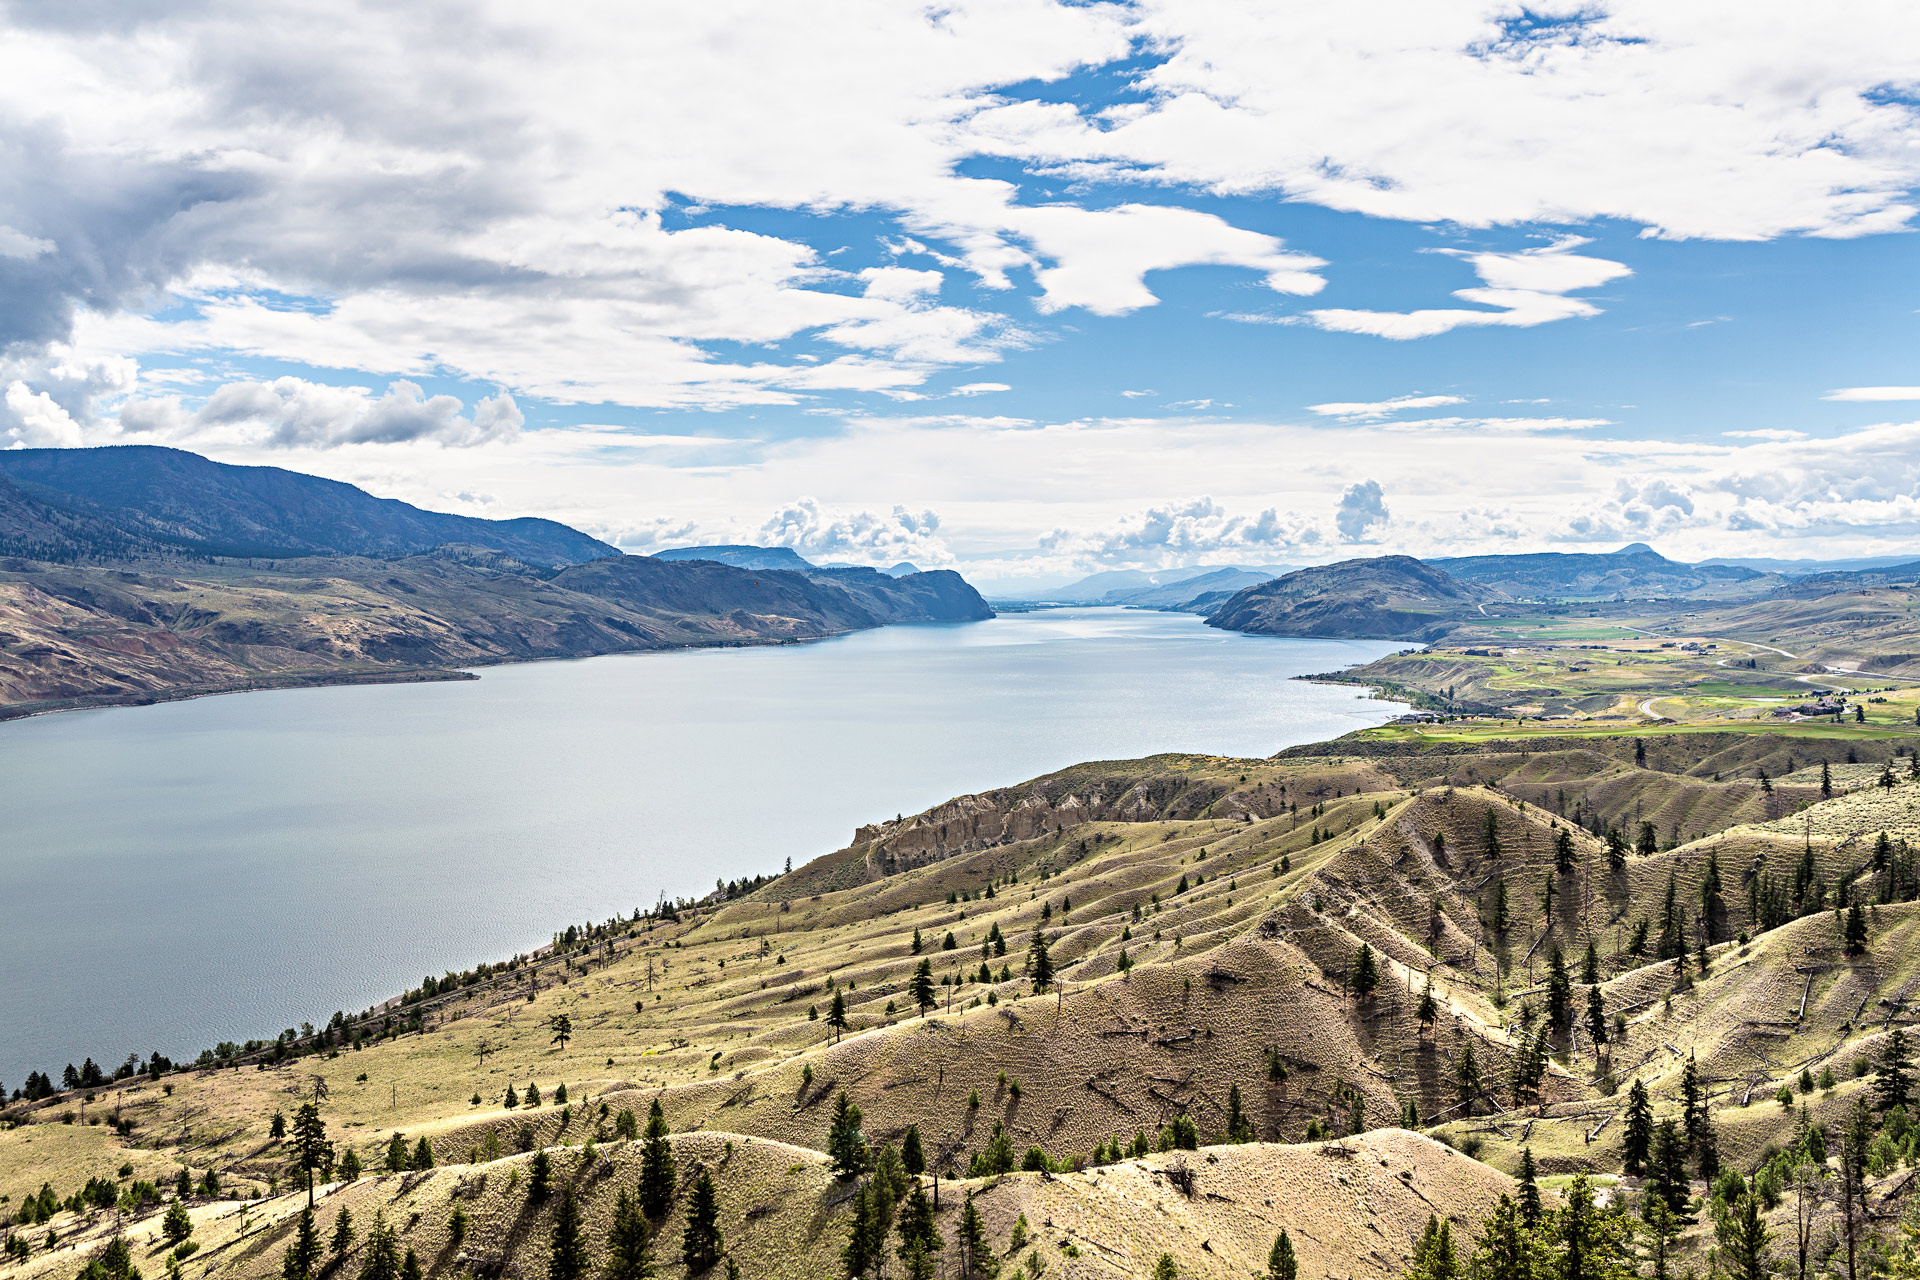 Kamloops Lake Colombie-Britannique Canada